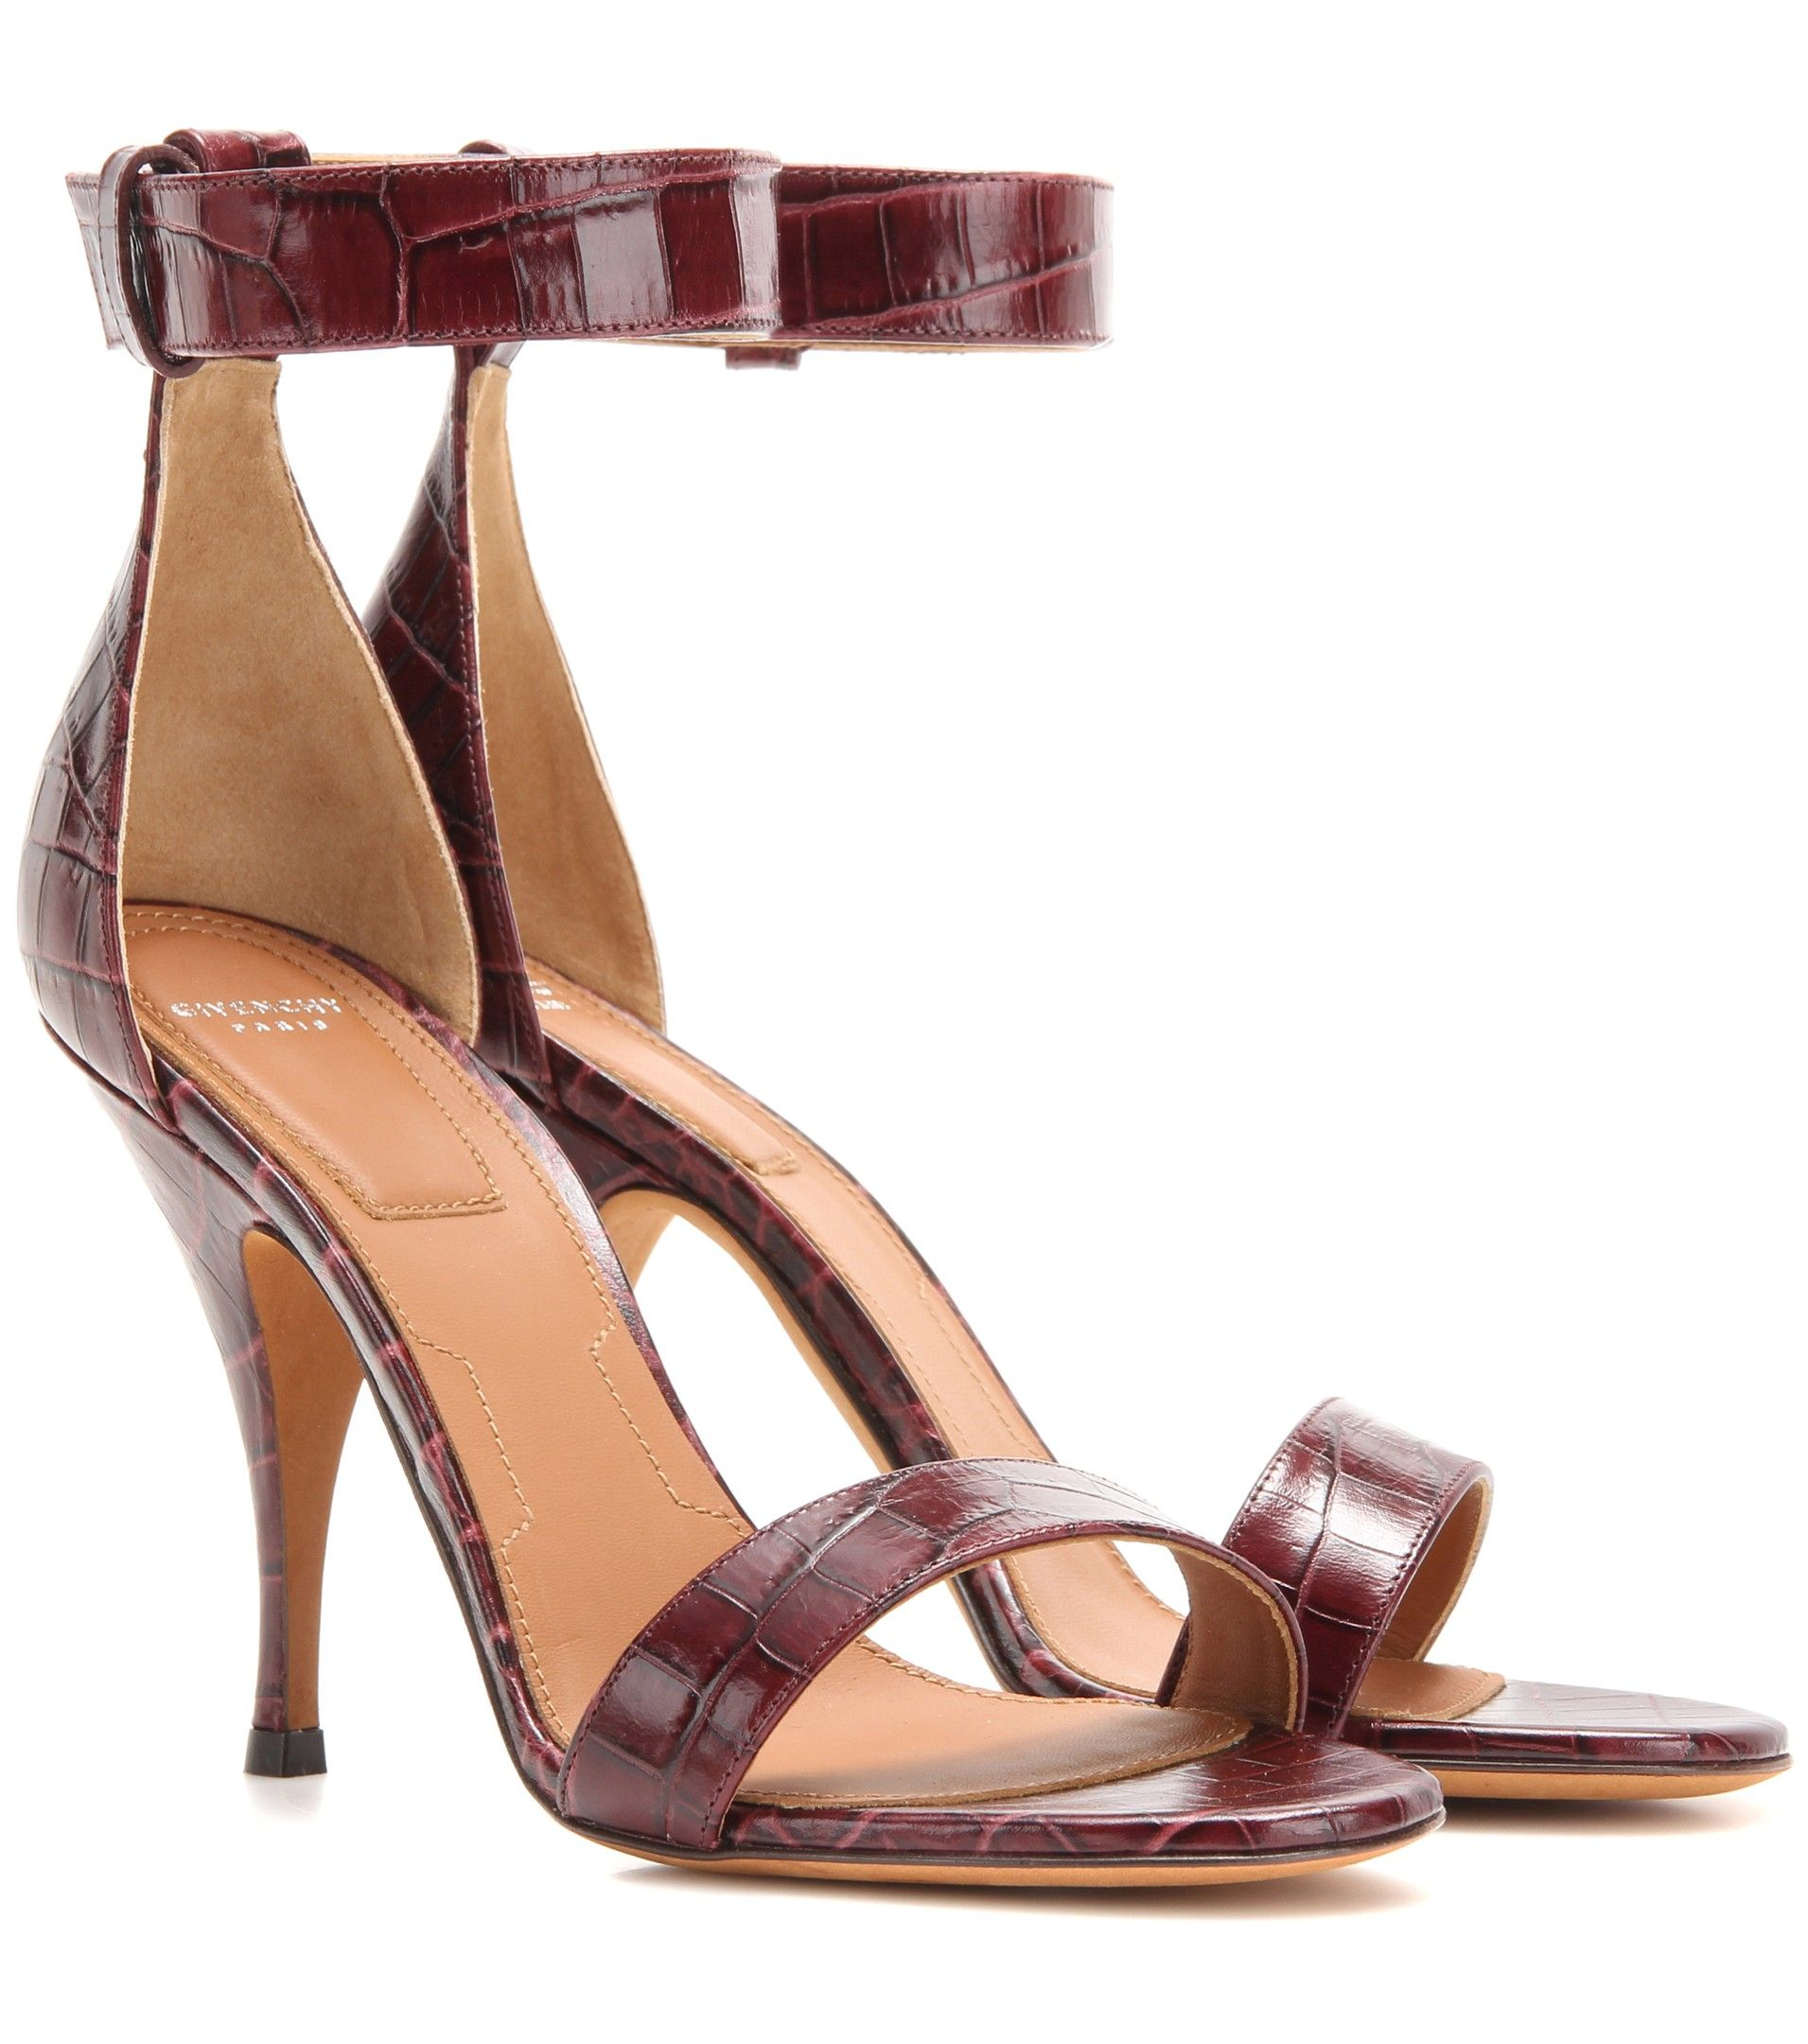 Givenchy Embossed Leather Sandals sale get to buy clearance supply outlet new arrival ZKJlI